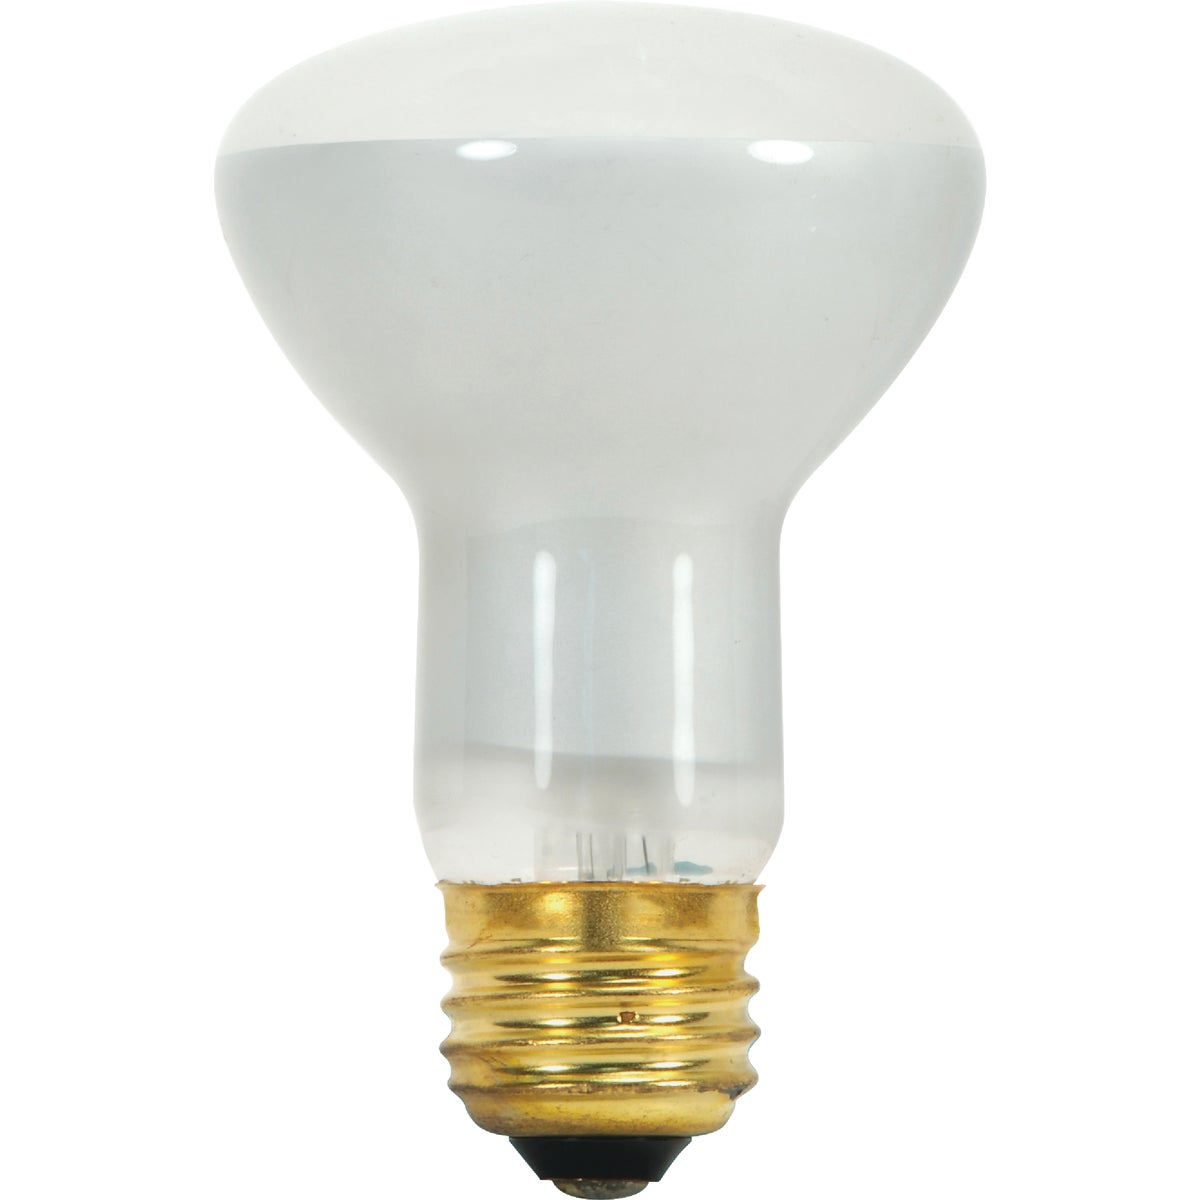 45W R20 SW FLD REFL BULB - 14878 by G E Lighting